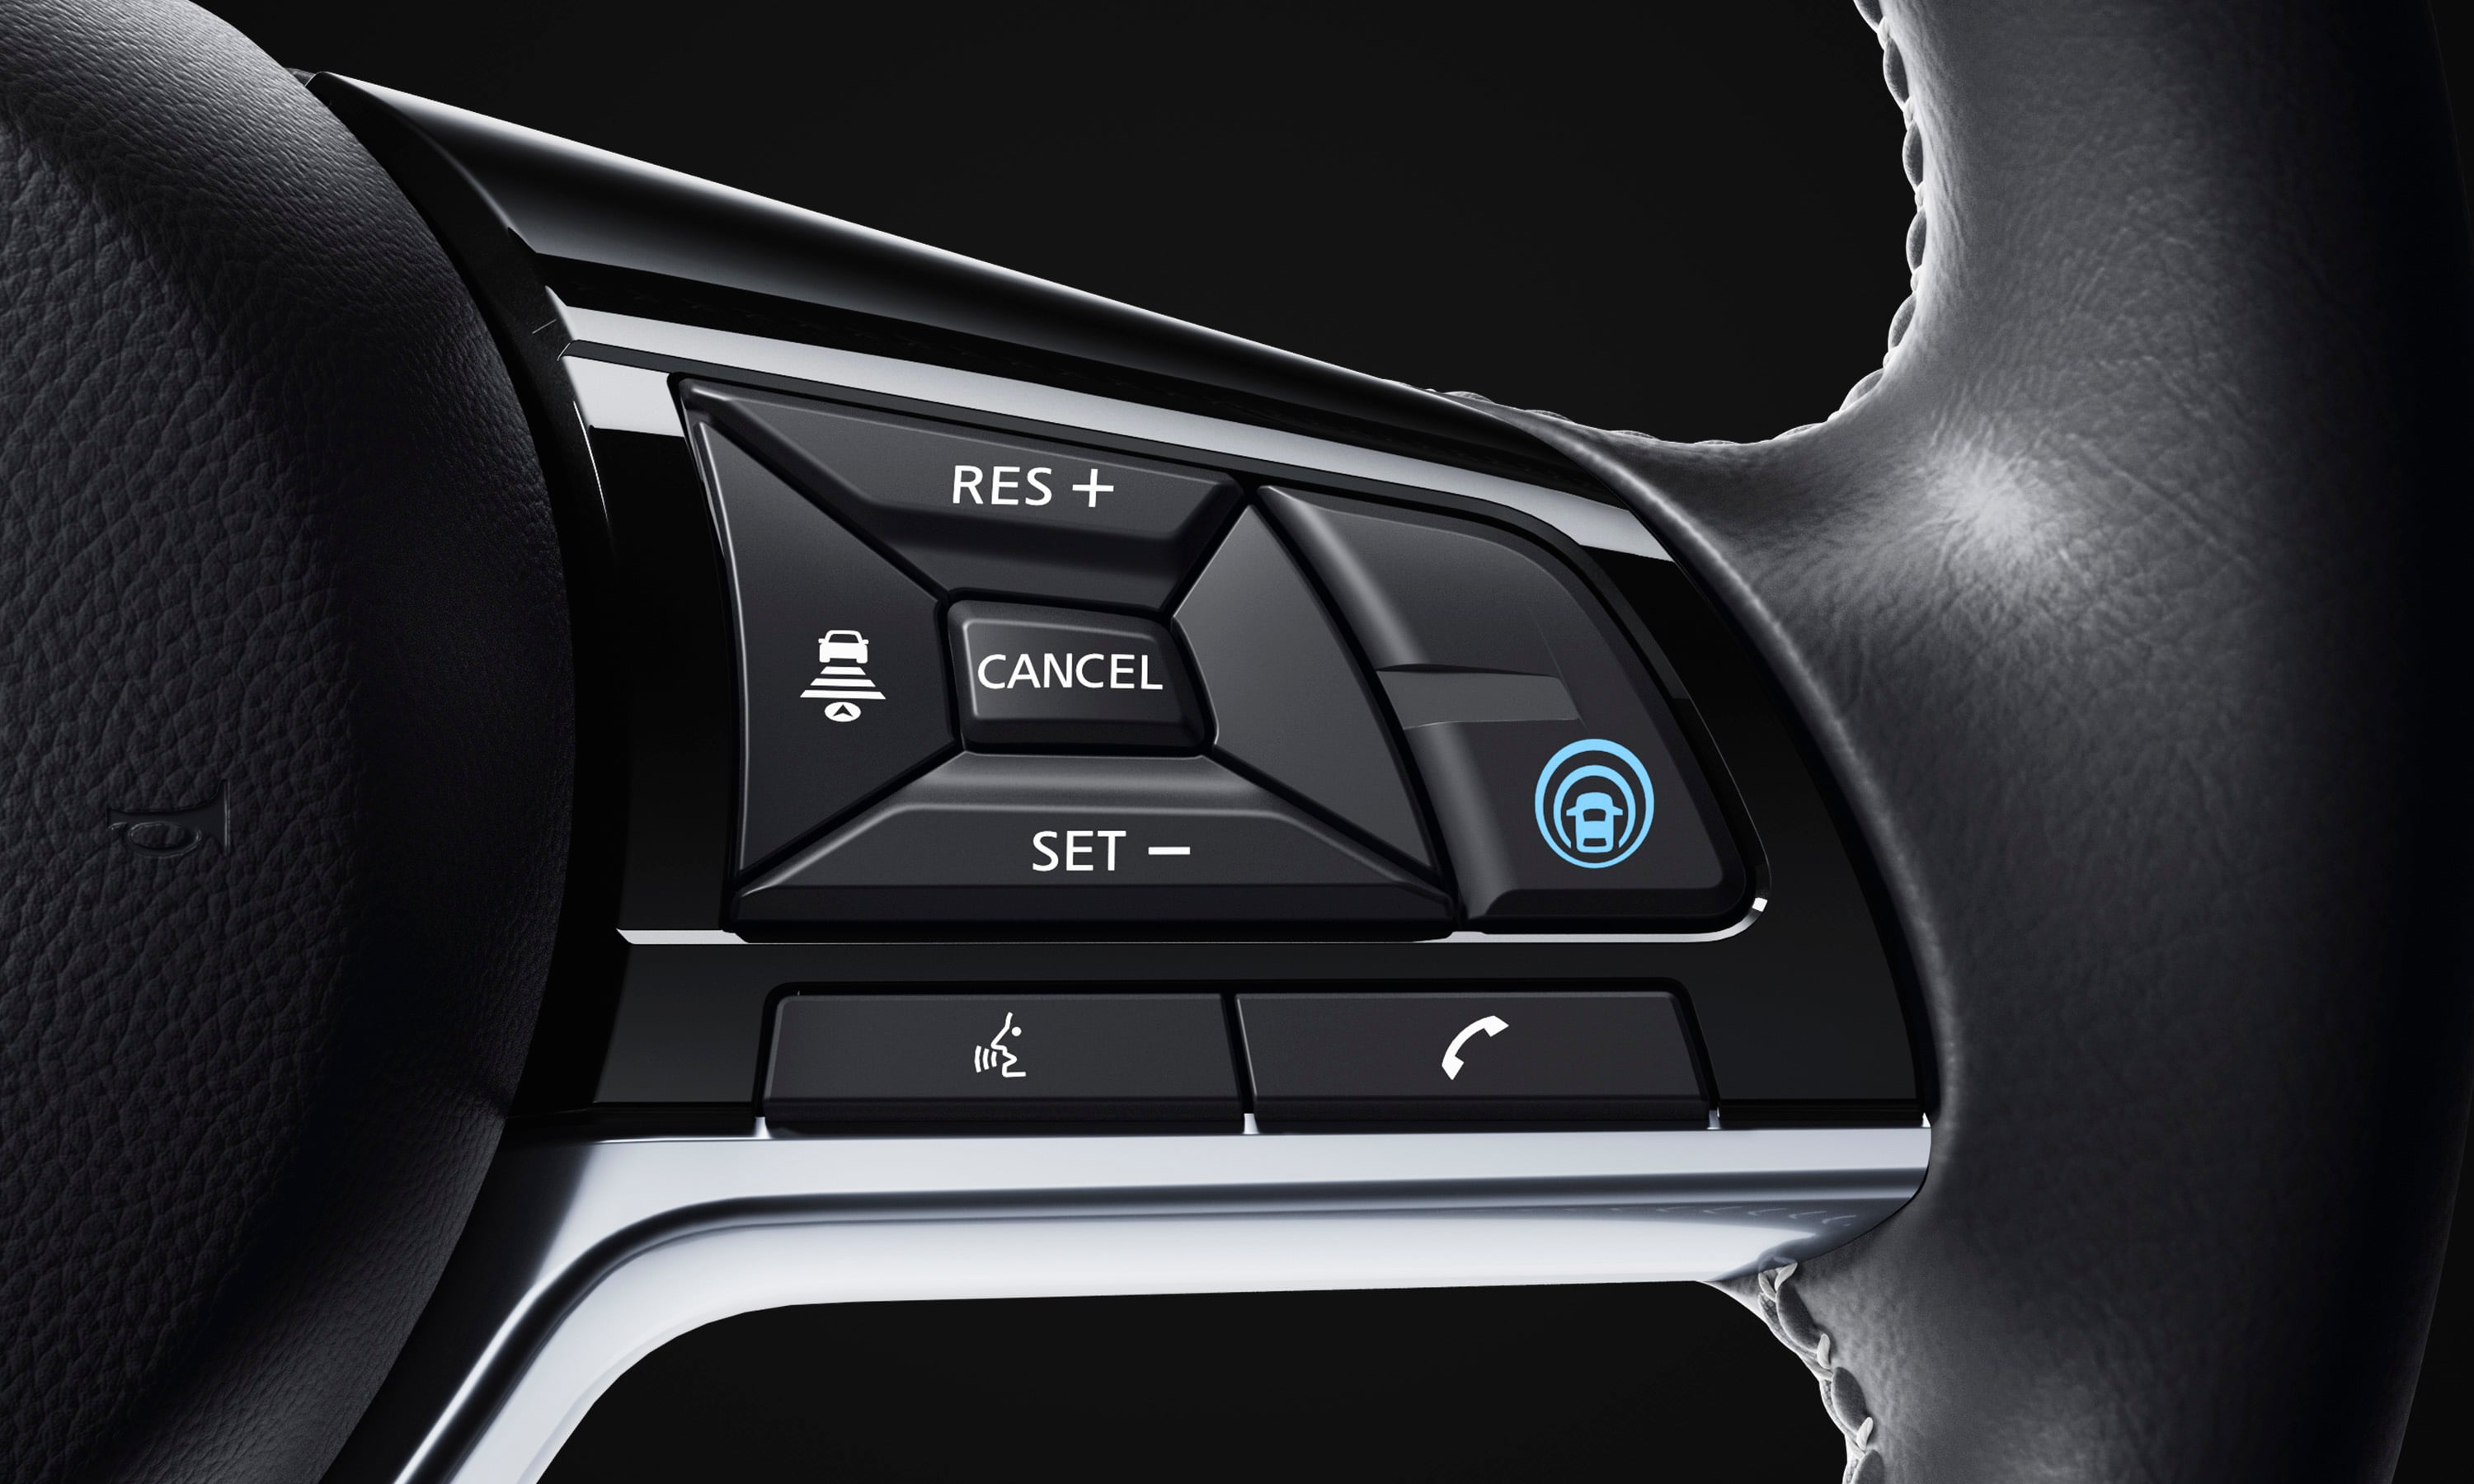 Steering Wheel Mounted Controls in the 2019 Altima